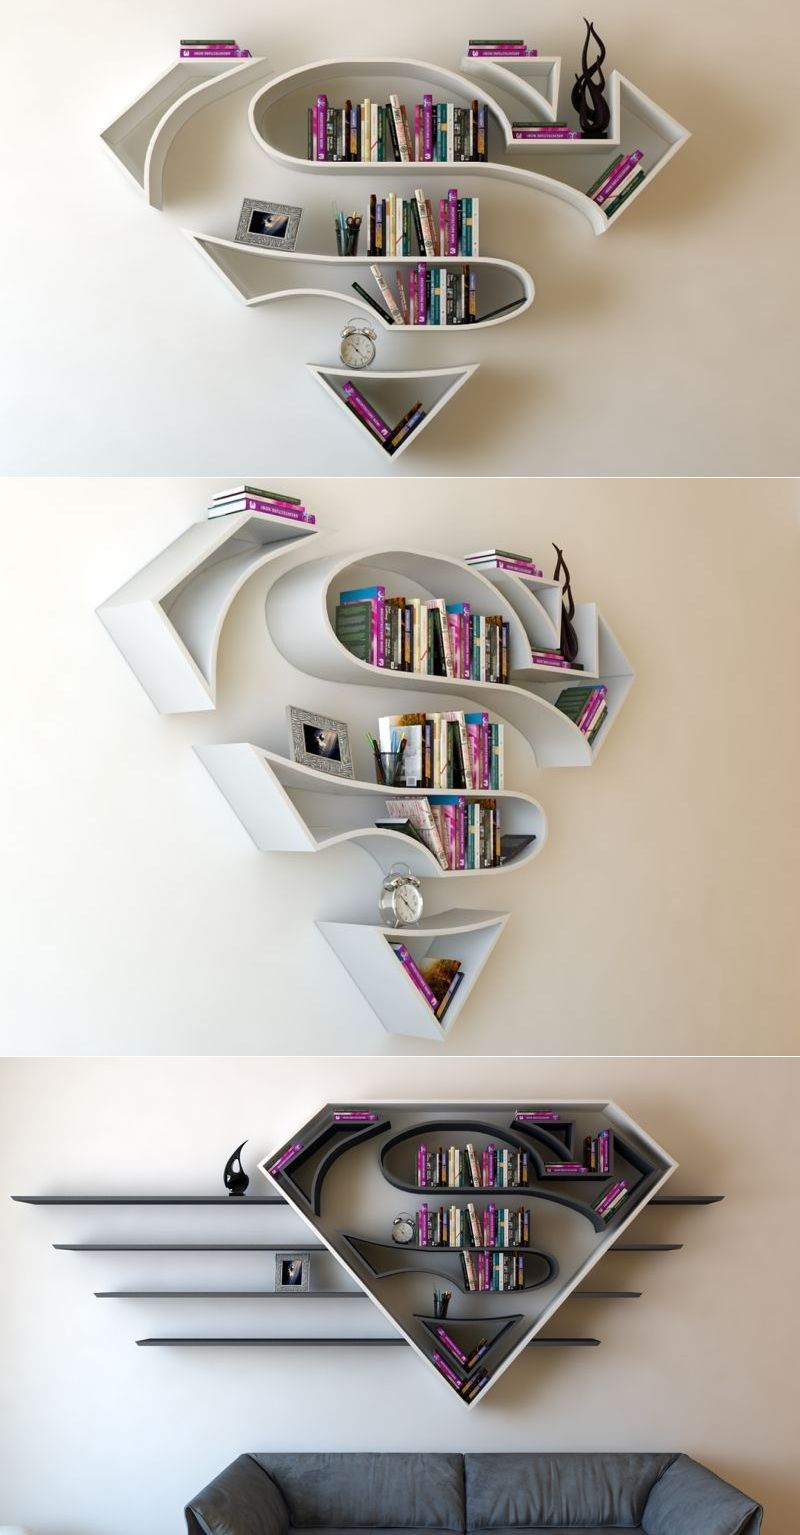 Superhero Themed Bookshelf Designs Shelving Shelvingunit Shelf Storageideas